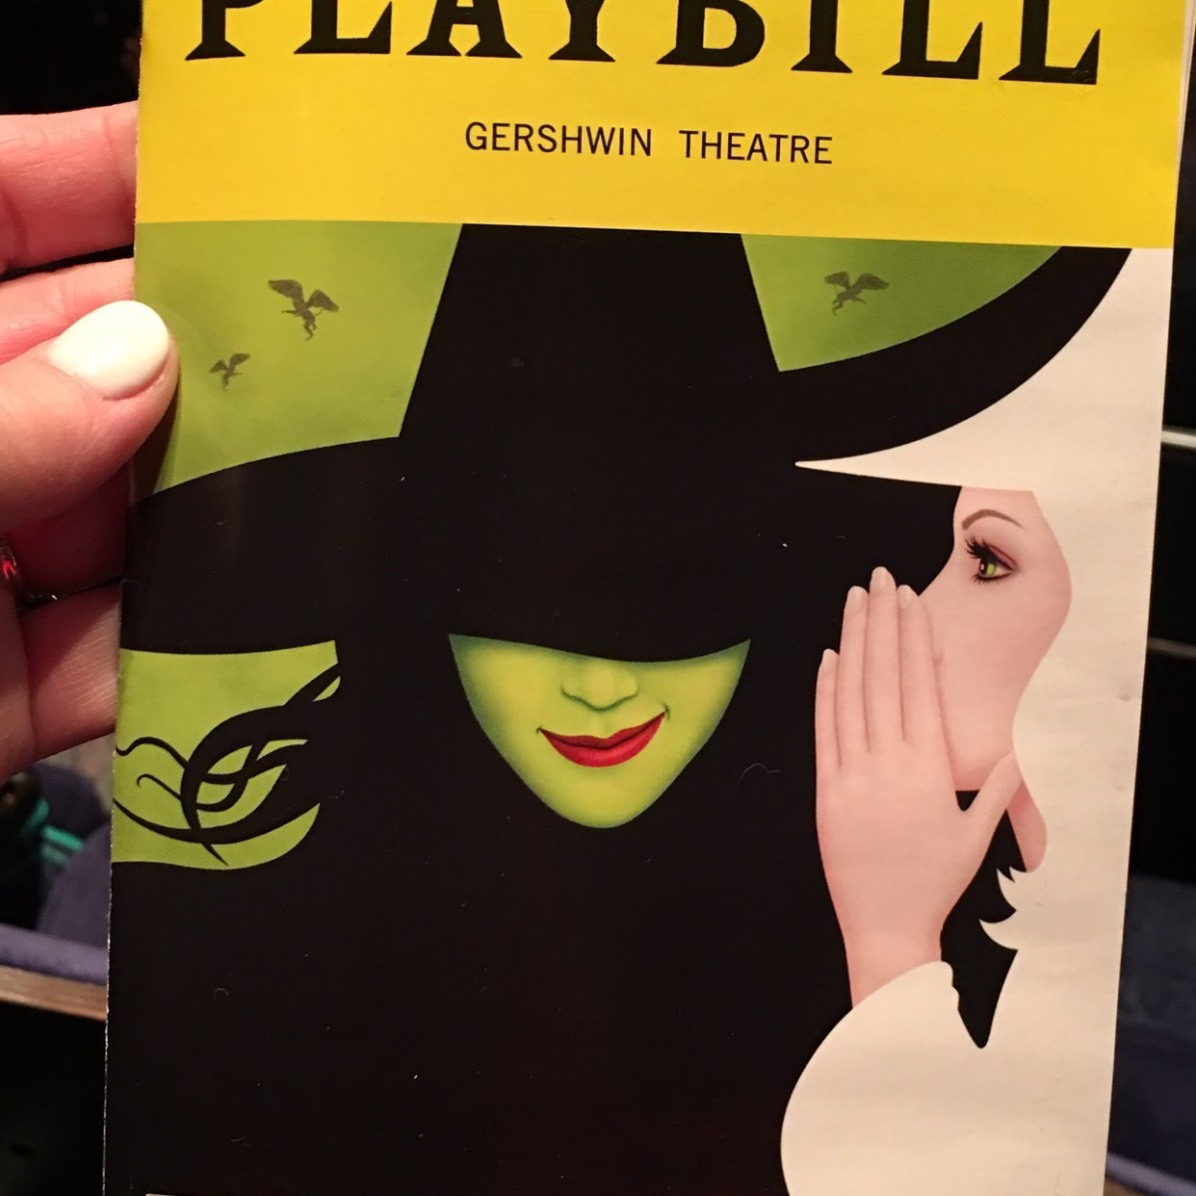 Wicked ... LOVED IT!